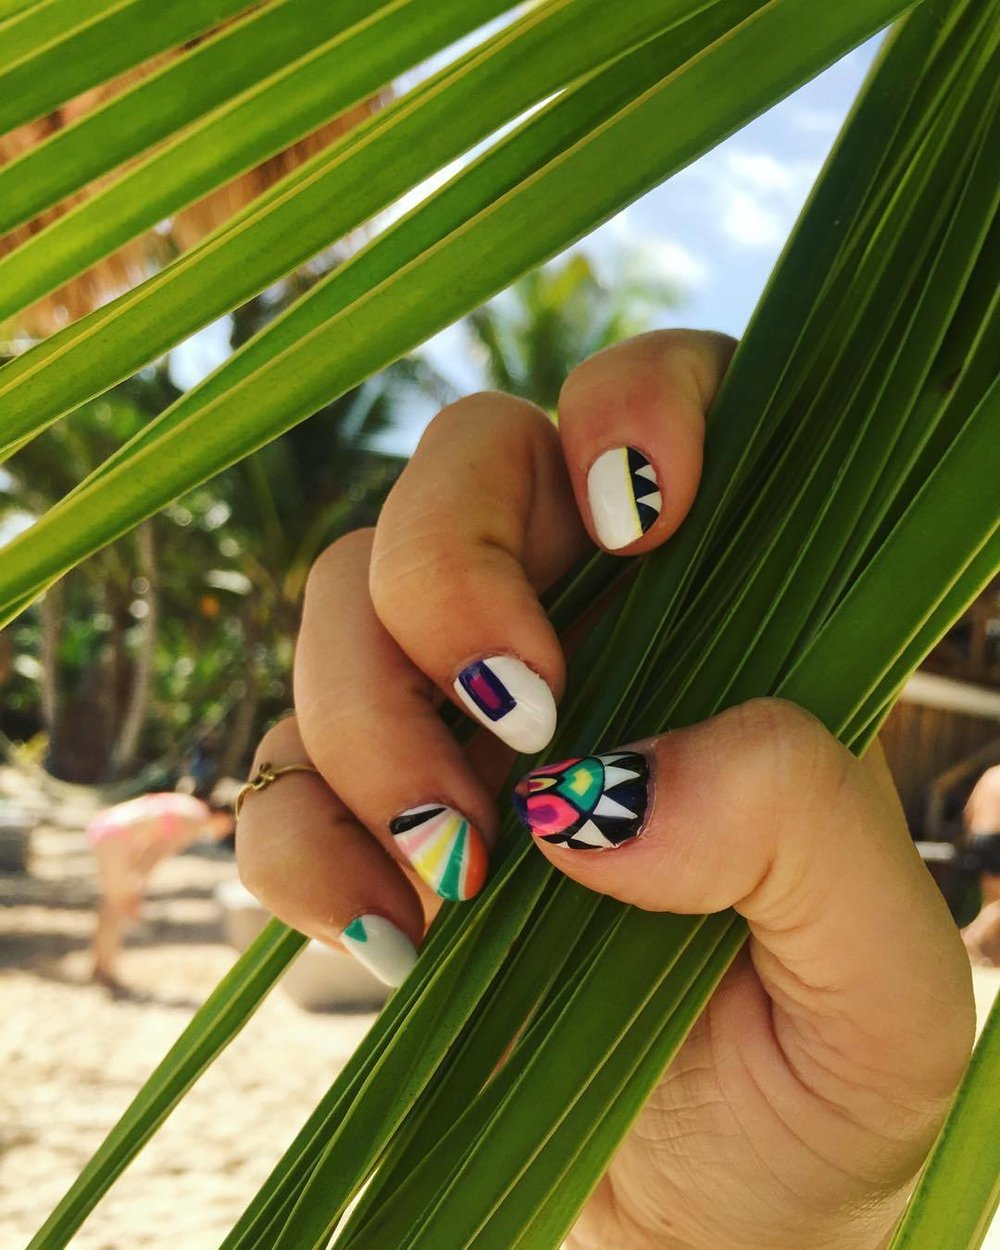 …i wasn't gonna come all the way to mexico without my nail game strong…dur dur da dur dur. #stillinmexicoguys  #tanAF #notgonnastopposting  (at Hotel Rosa Del Viento, Tulum)